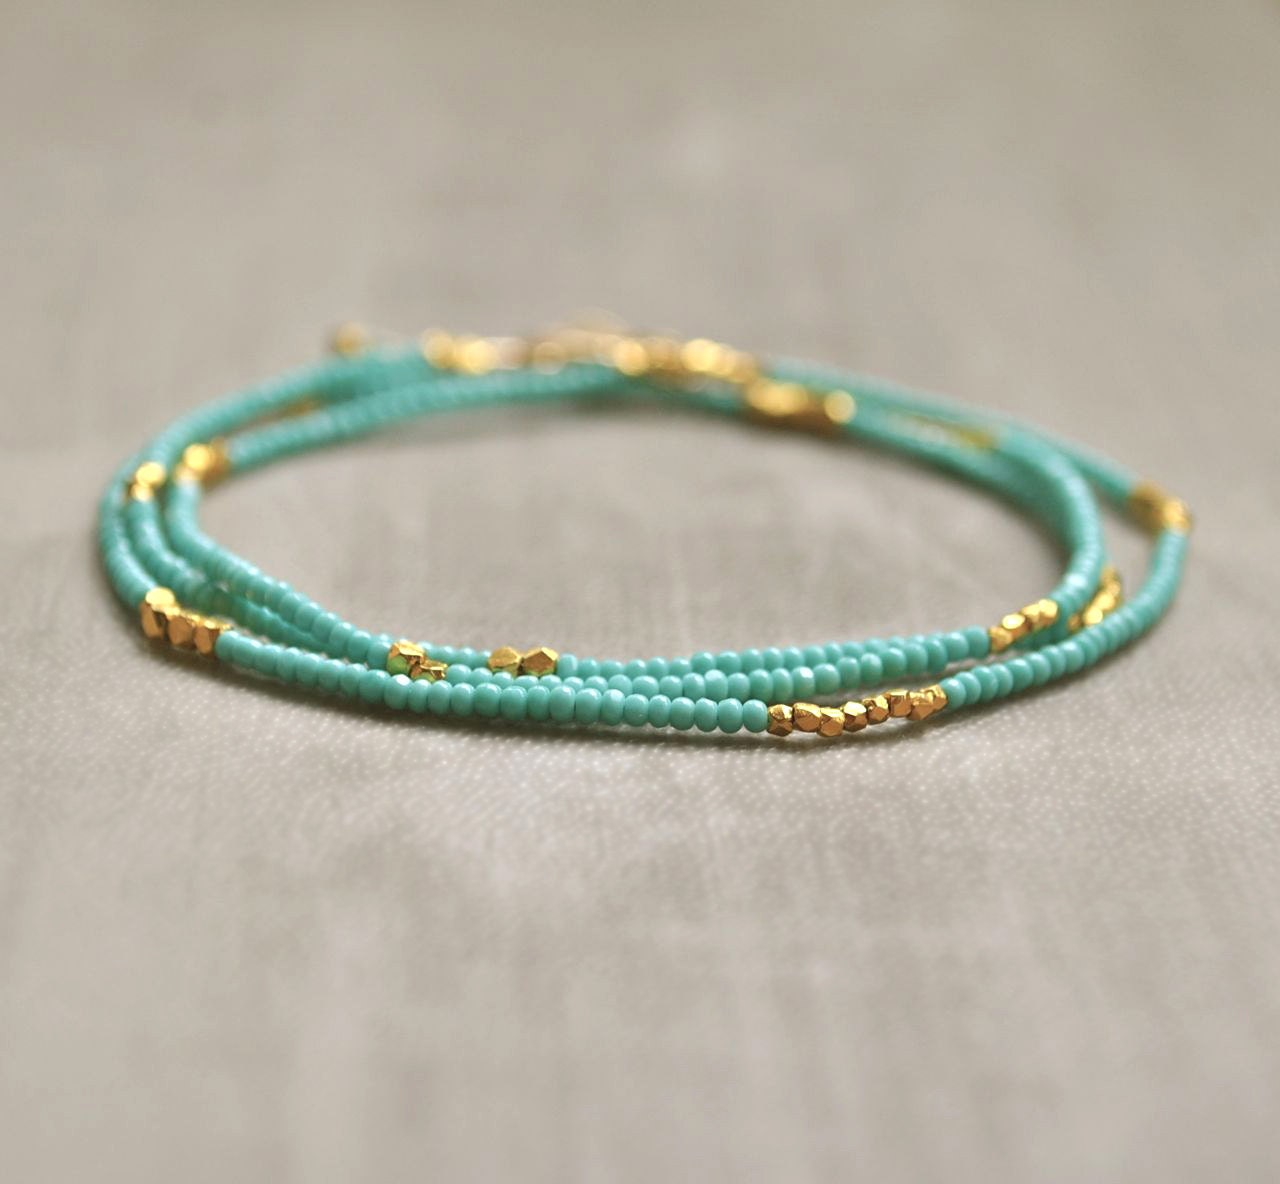 turquoise seed bead necklace bracelet with gold by flowdesigns. Black Bedroom Furniture Sets. Home Design Ideas